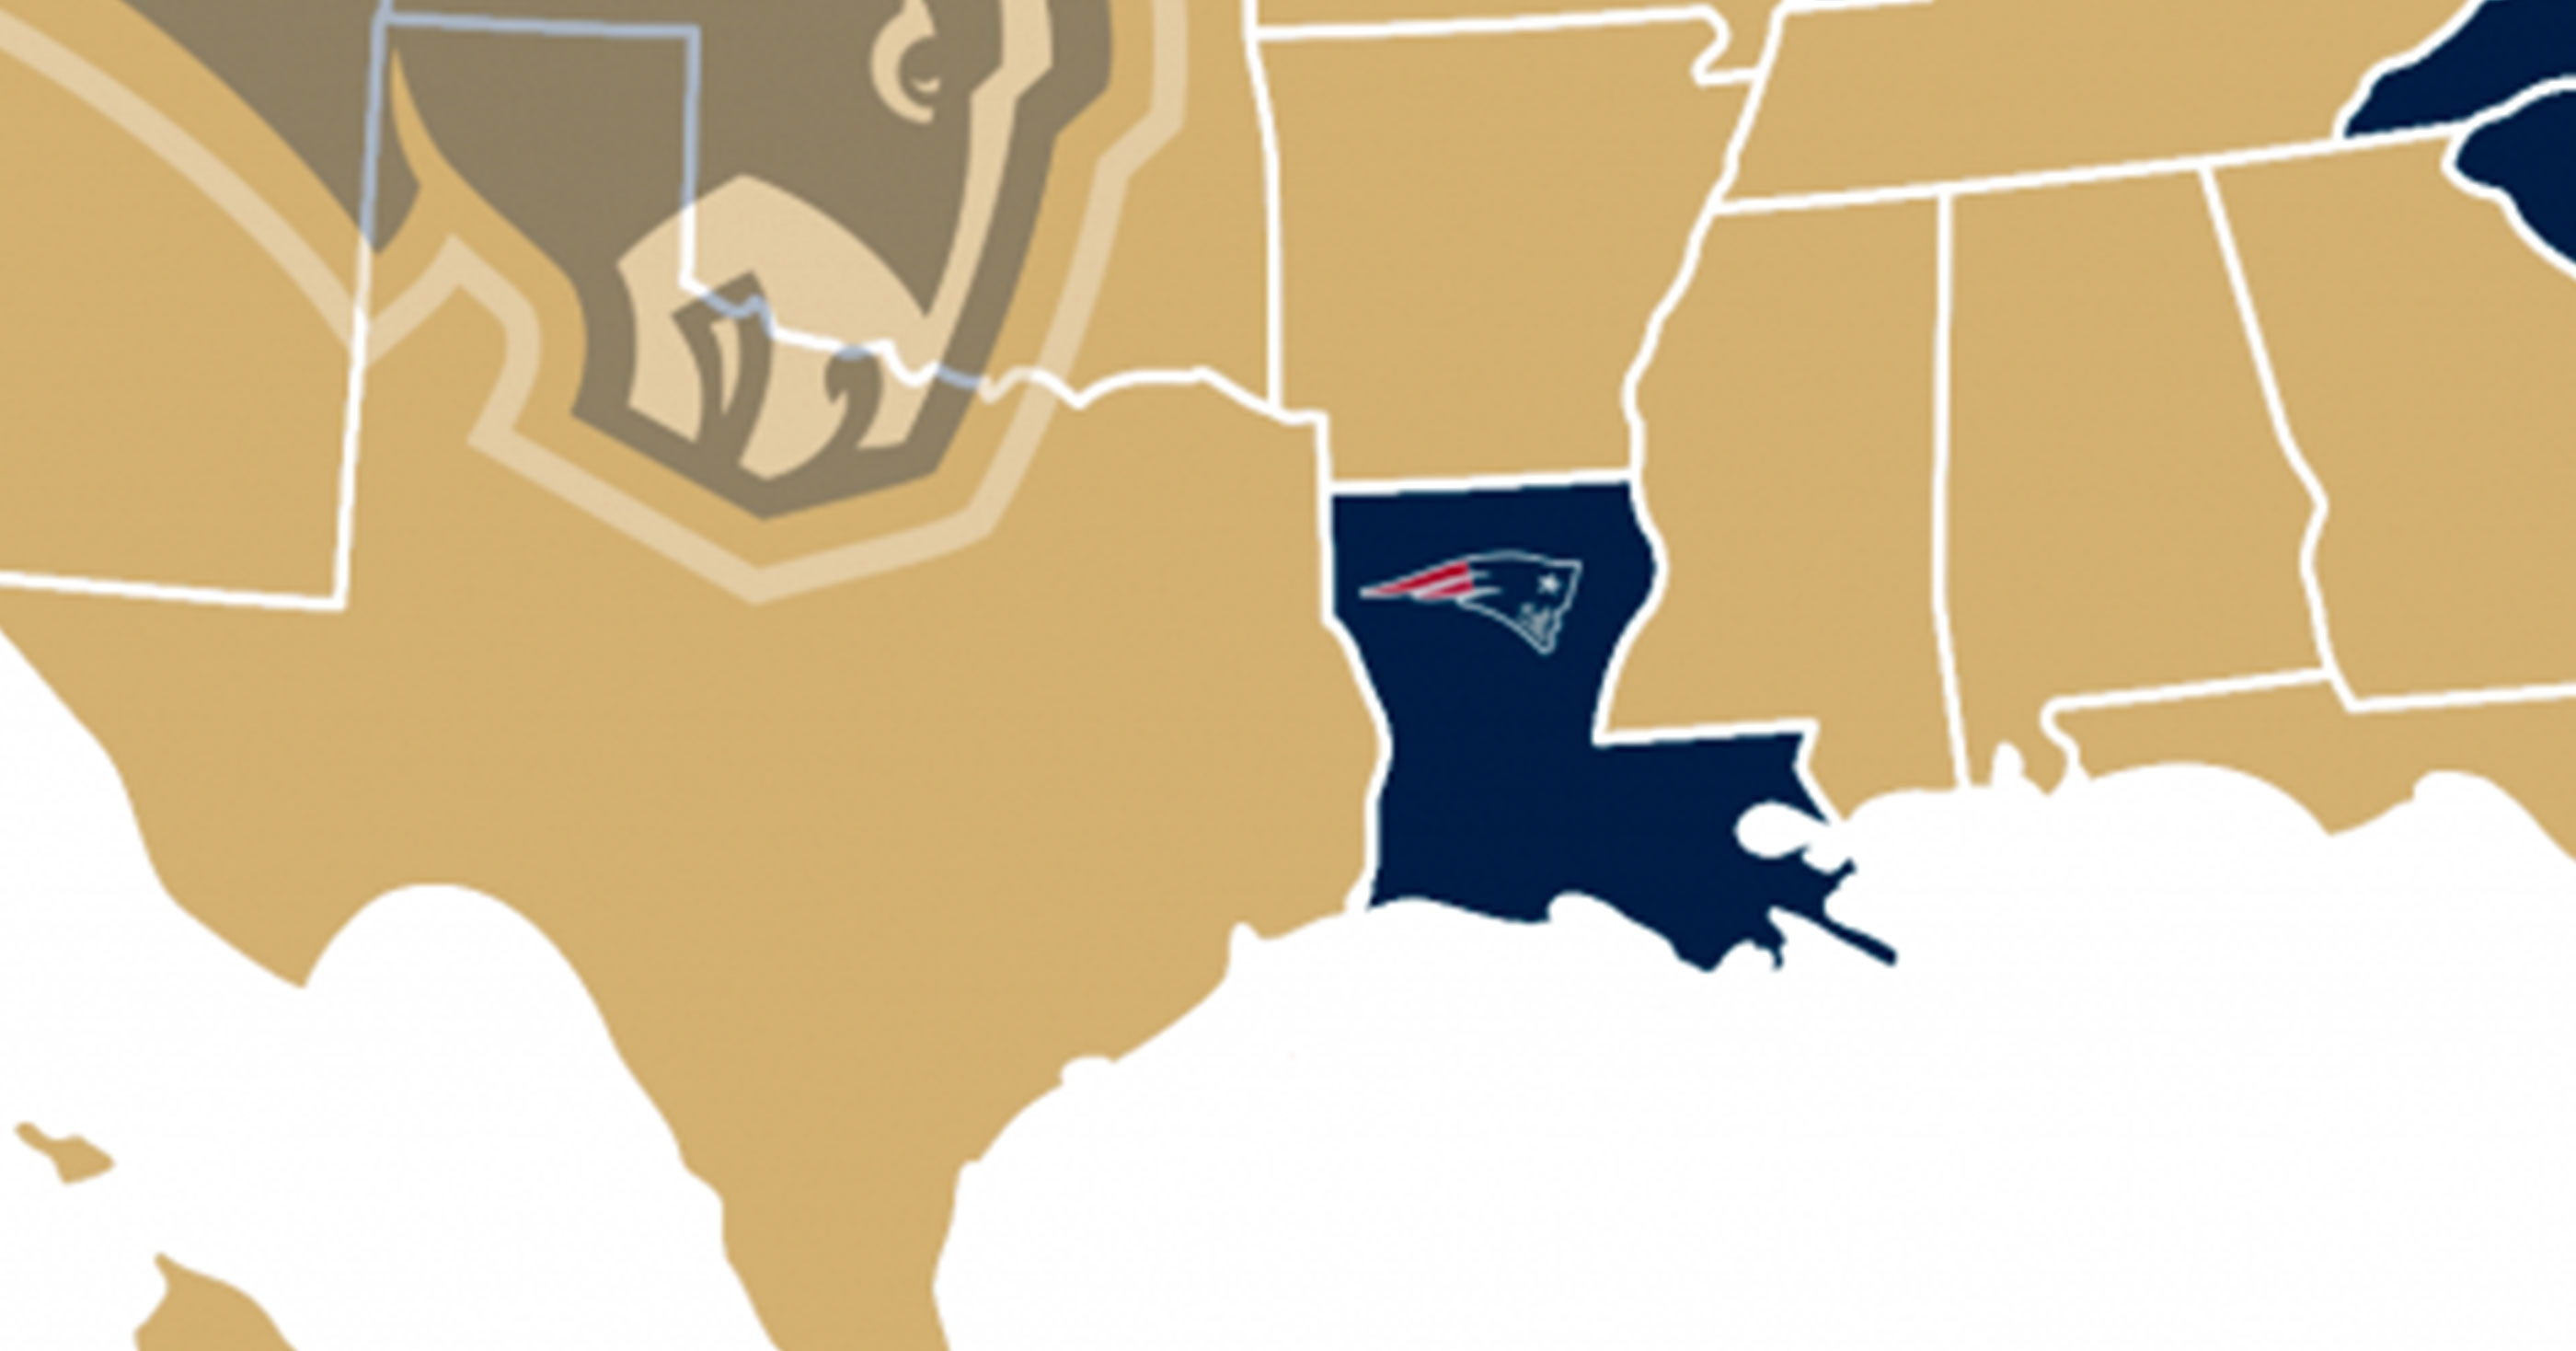 Map Shows Which Team Each State Is Rooting For In Super Bowl regarding Super Bowl State Map